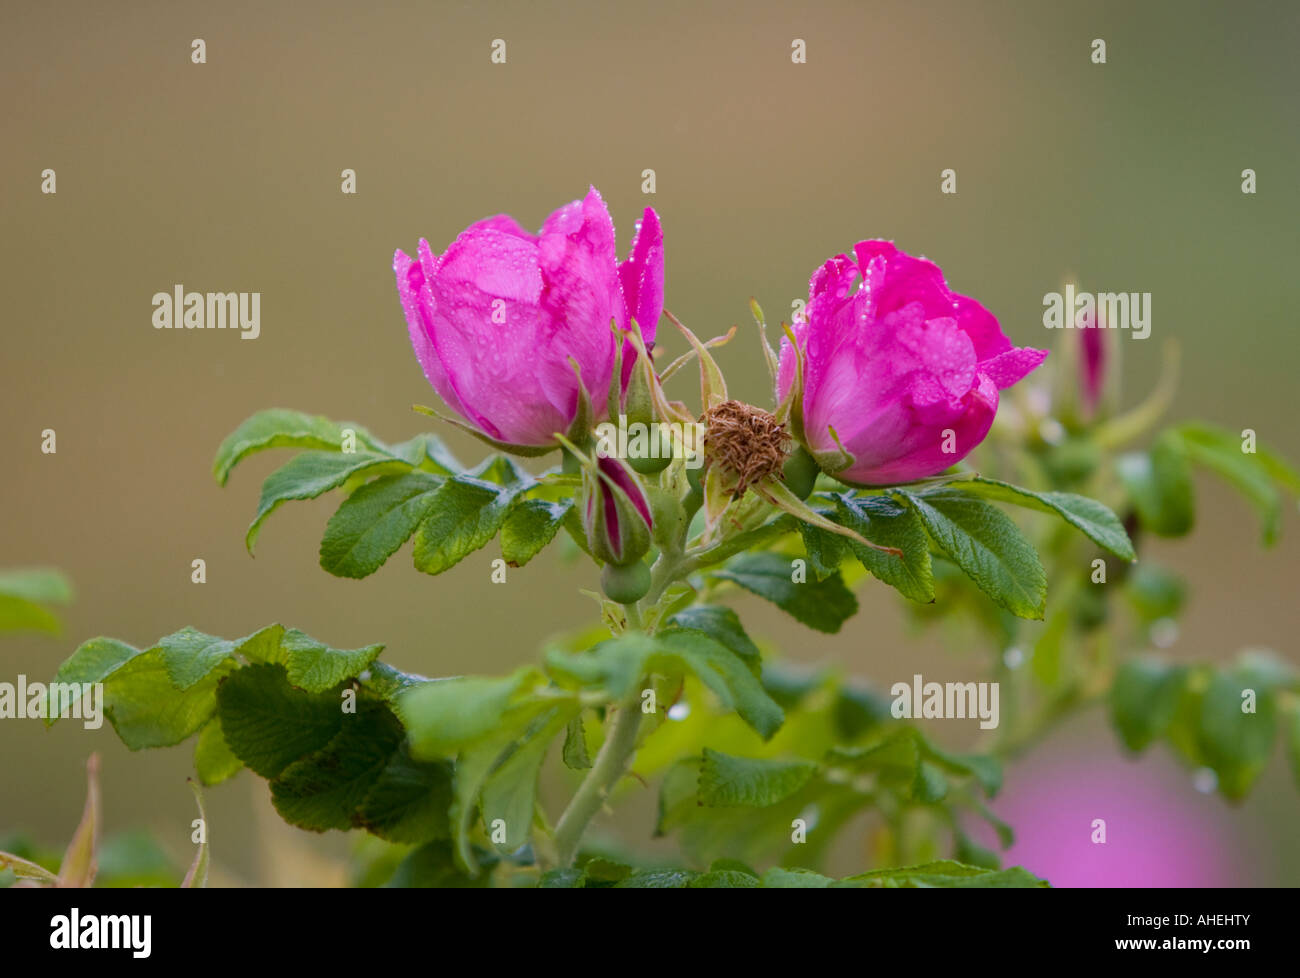 Roses in Swedish garden - Stock Image